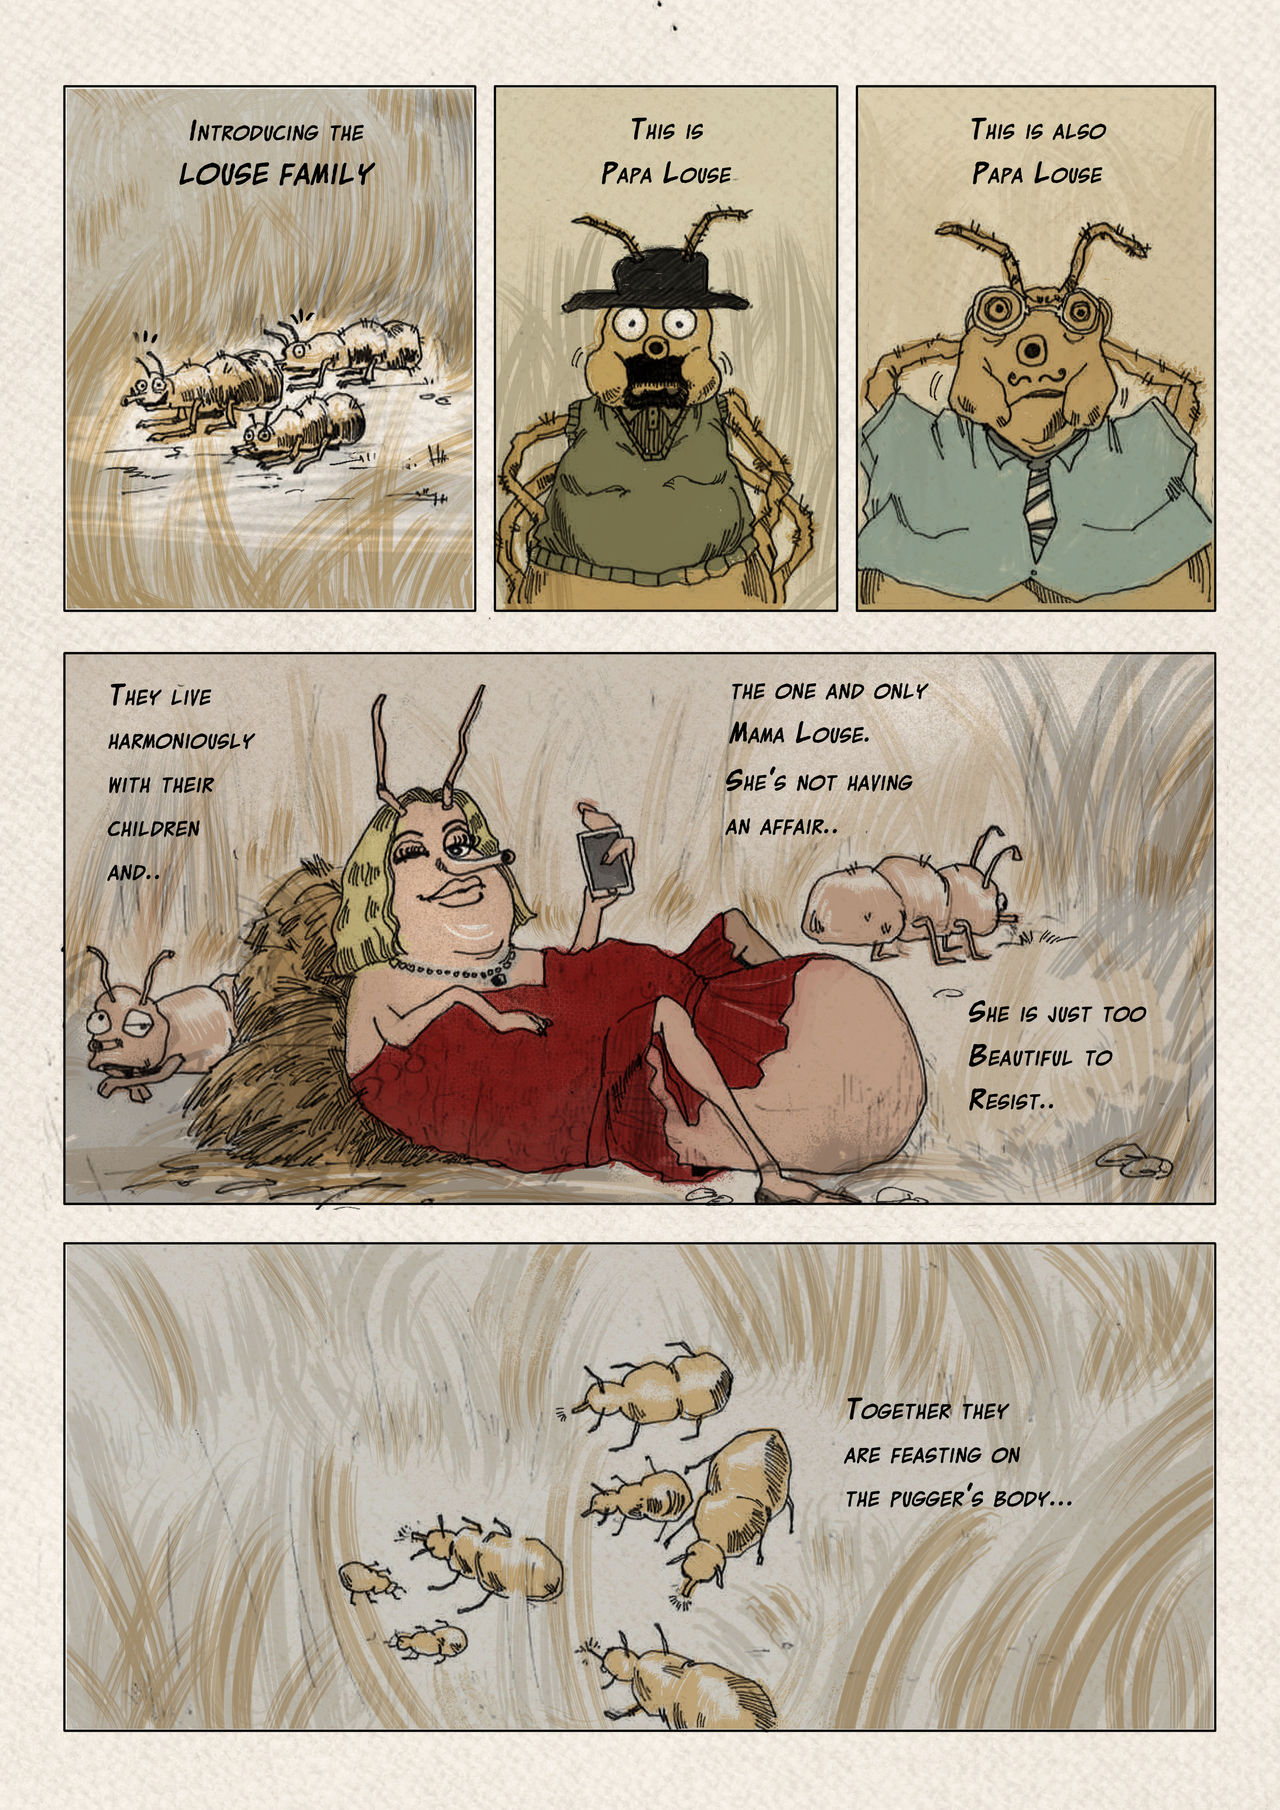 Webcomic panel in a sketchy style using earth tones. This panel introduces members of the louse family in an anthropomorphic way, from Papa Louse to Mama Louse who's wearing a big red dress and looks glamourous. It explains that there are lots of dads but only one mama and that they all live harmoniously.